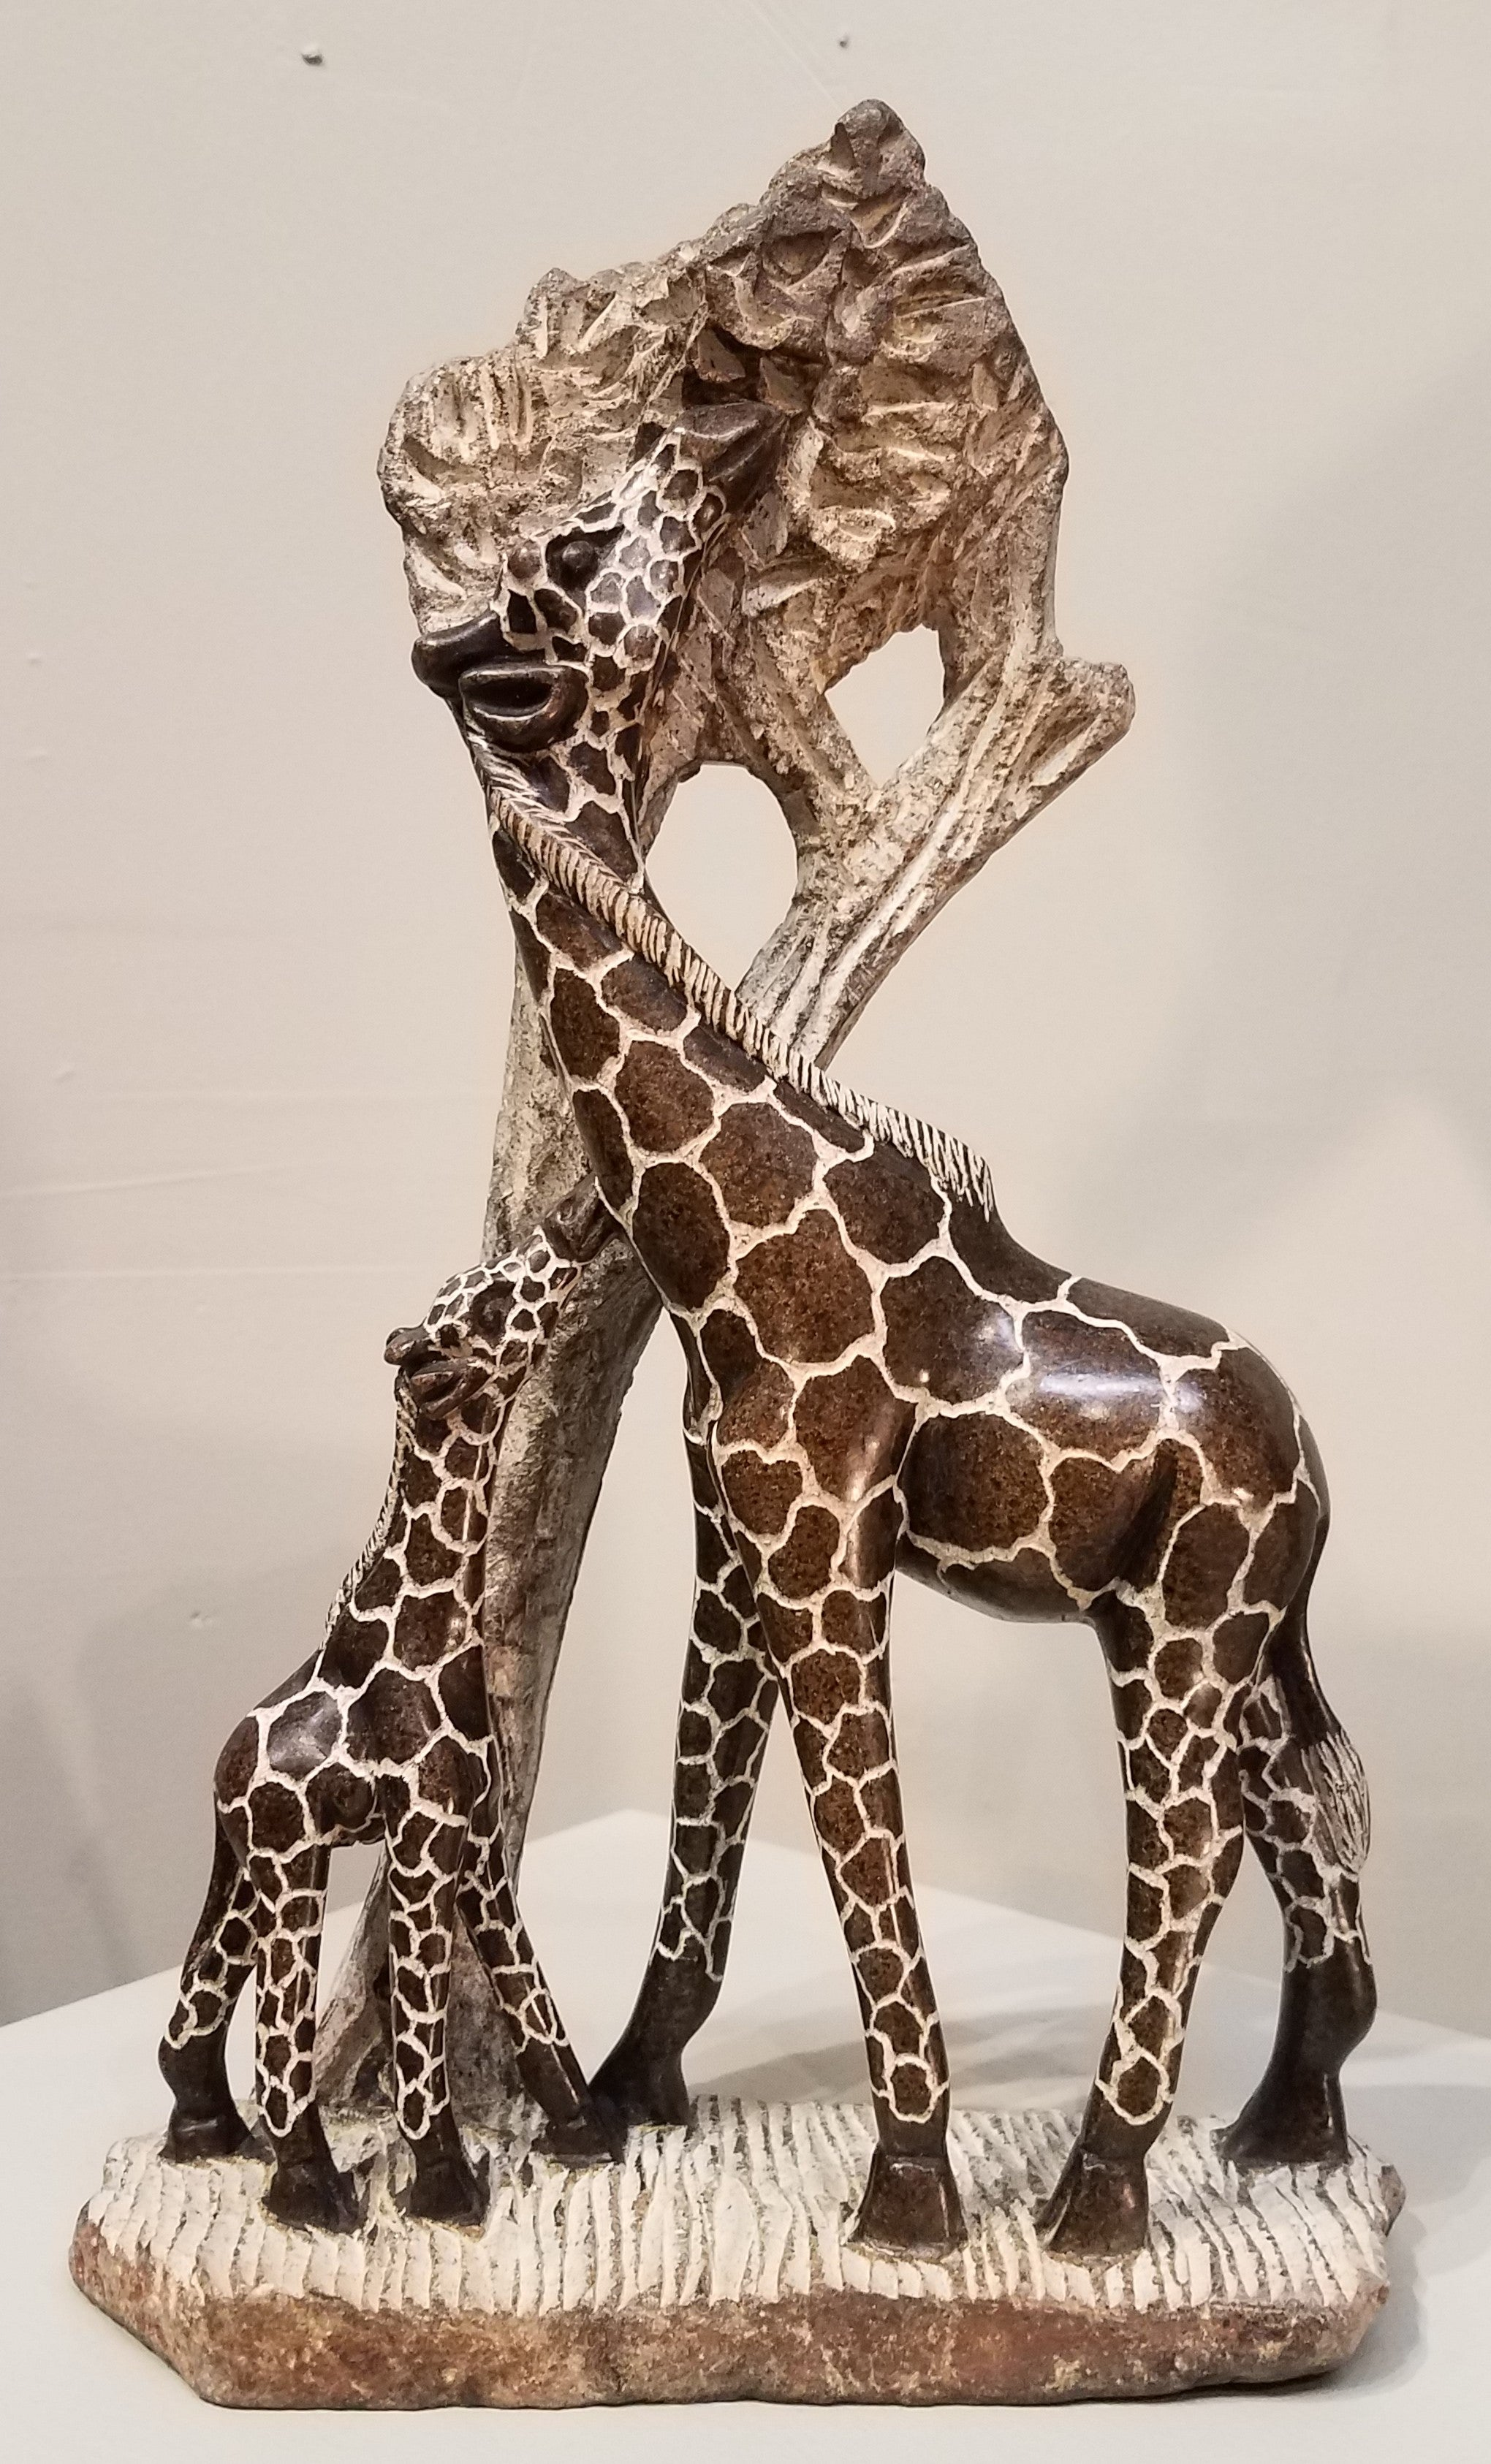 Beautiful mother giraffe with her calf was sculpted by hand from a single piece of serpentine stone, in Zimbabwe. The stone is brownish, with the patterns etched into the polished stone. The etched areas are greyish/whitish, as is the tree that they are eating from.